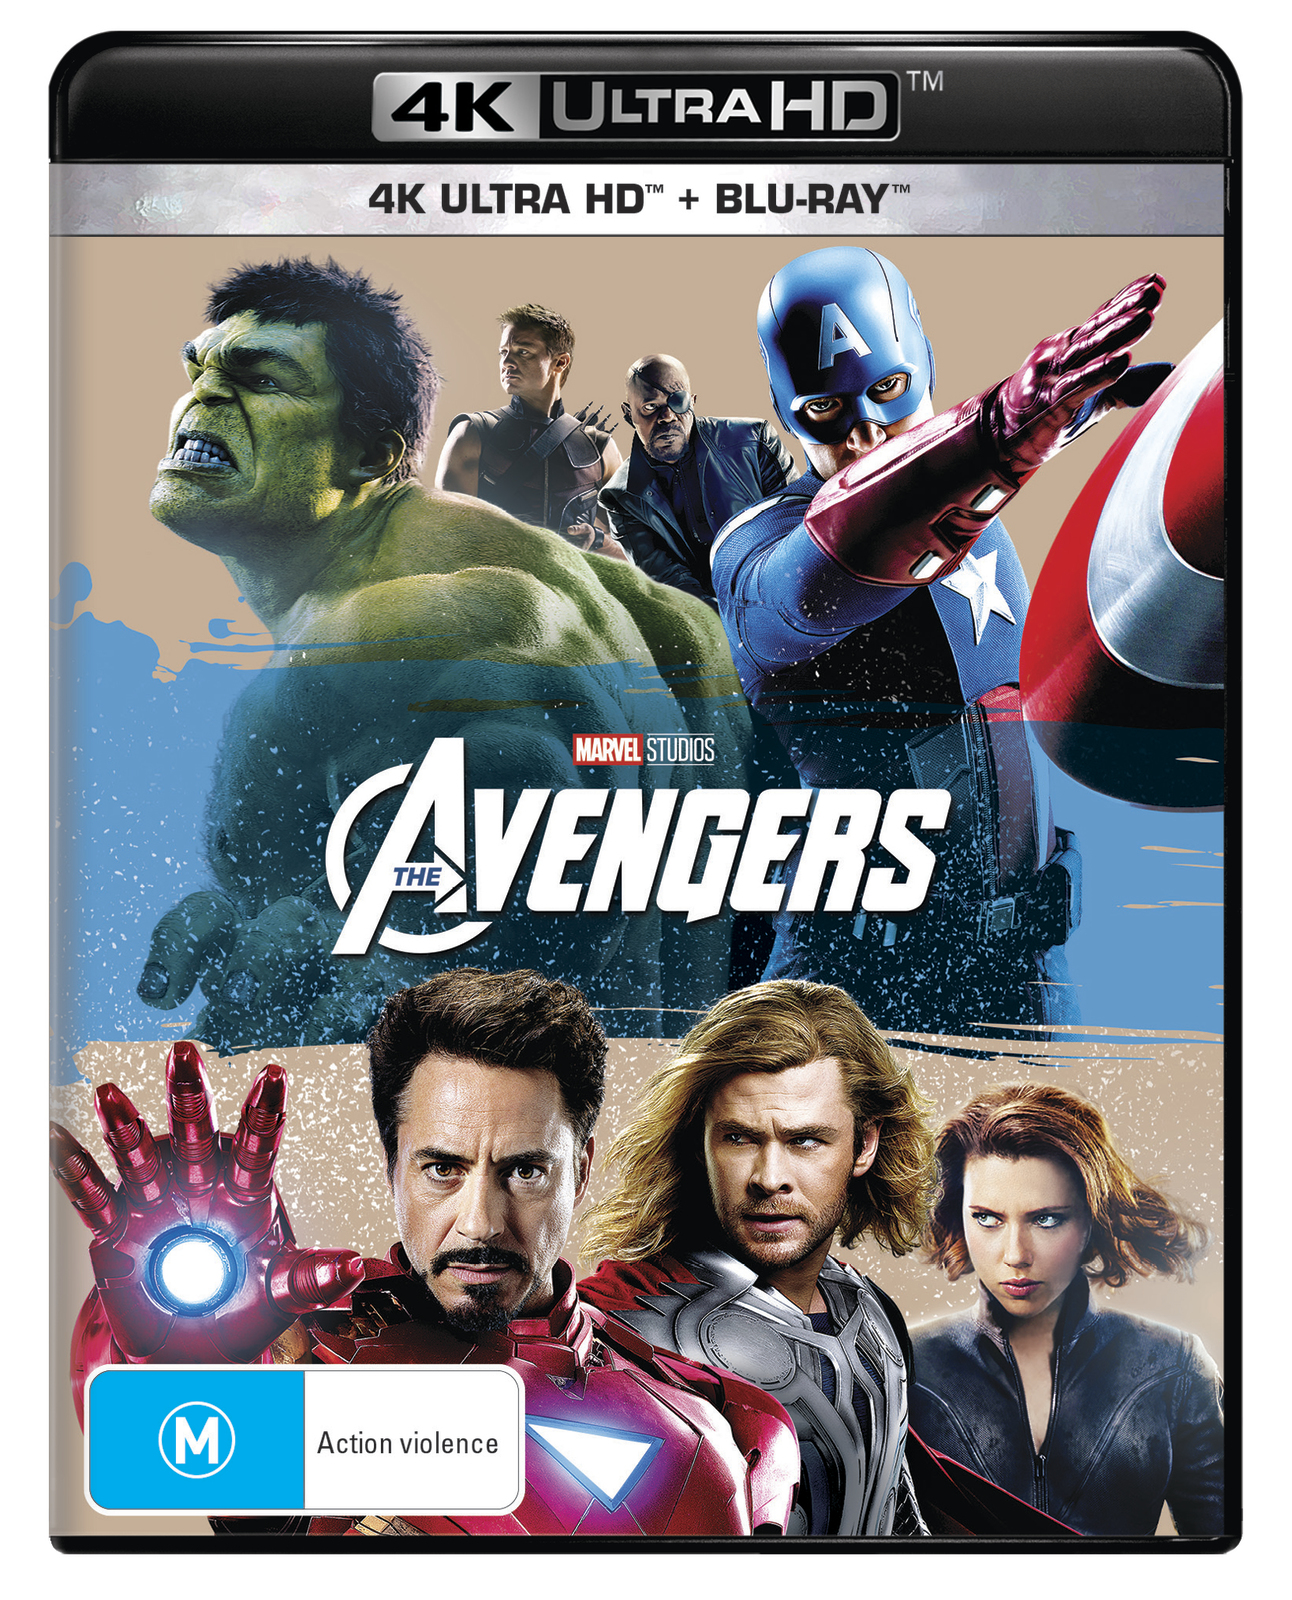 The Avengers on UHD Blu-ray image